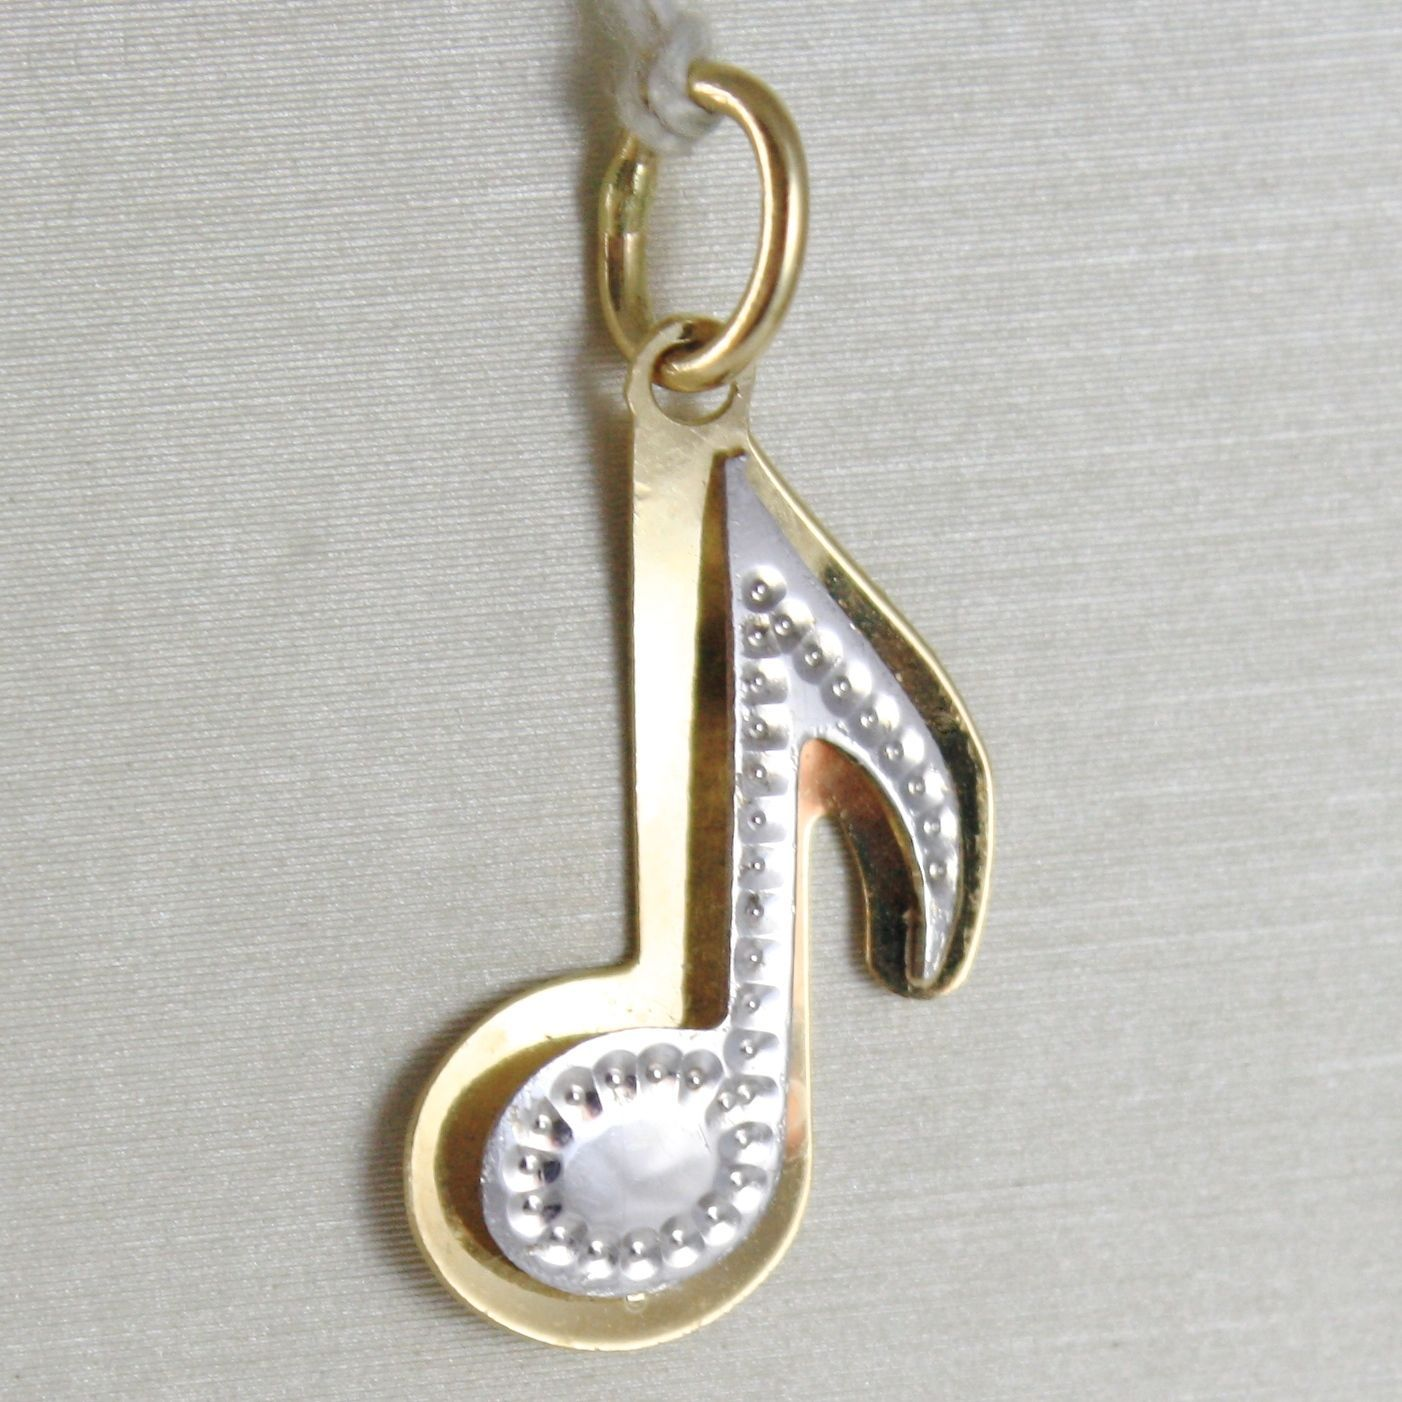 YELLOW GOLD PENDANT WHITE 750 18K, MUSICAL NOTE DOUBLE LAYER, 2.5 CM